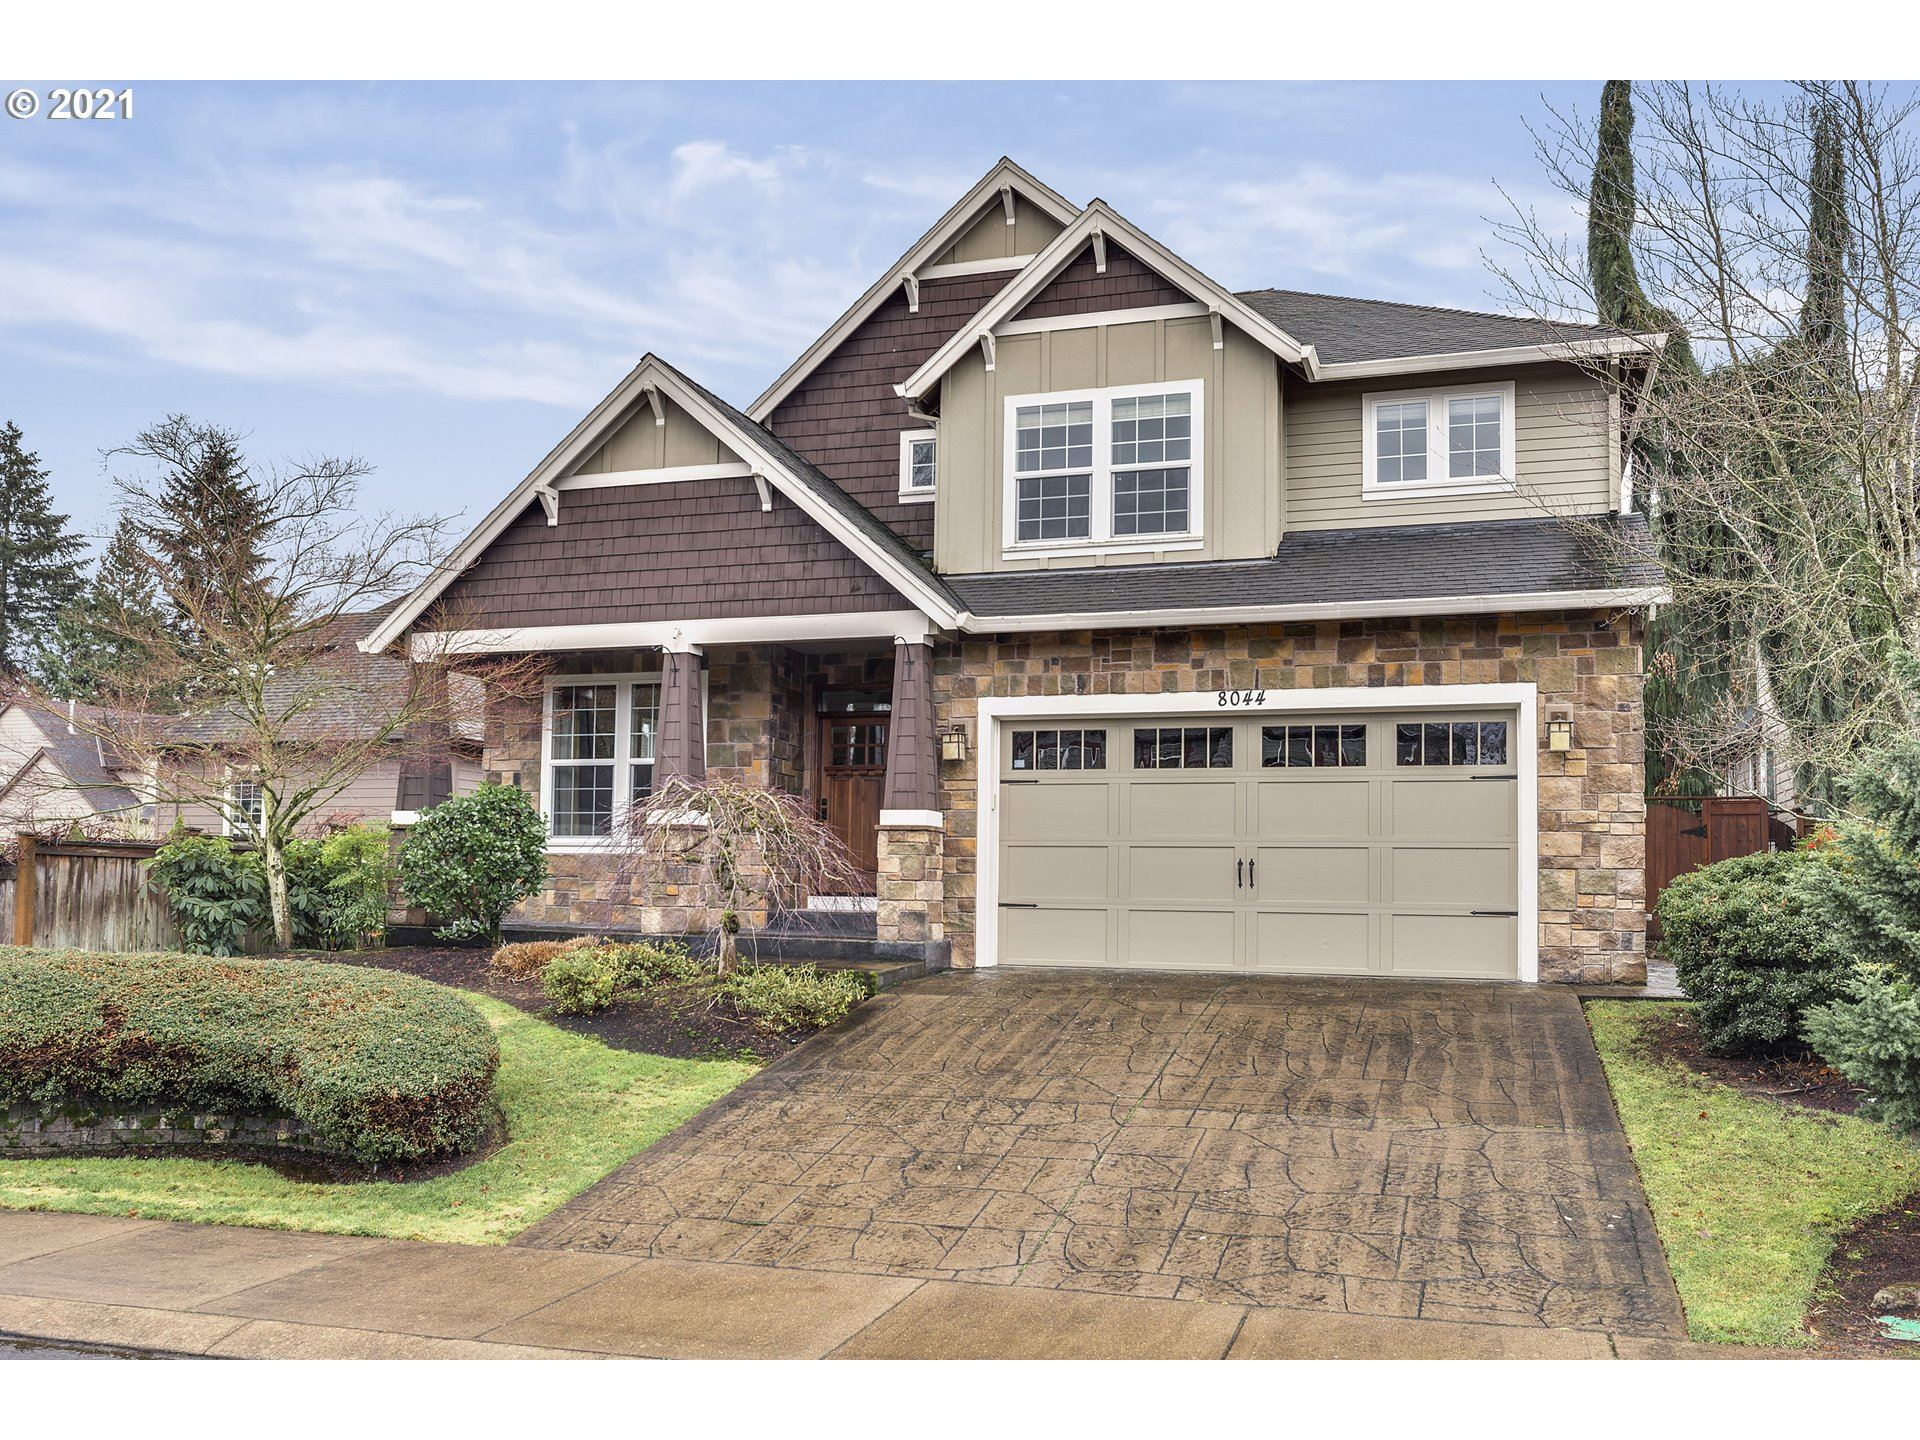 Photo for 8044 SE TOWHEE CT, Milwaukie, OR 97267 (MLS # 21684100)